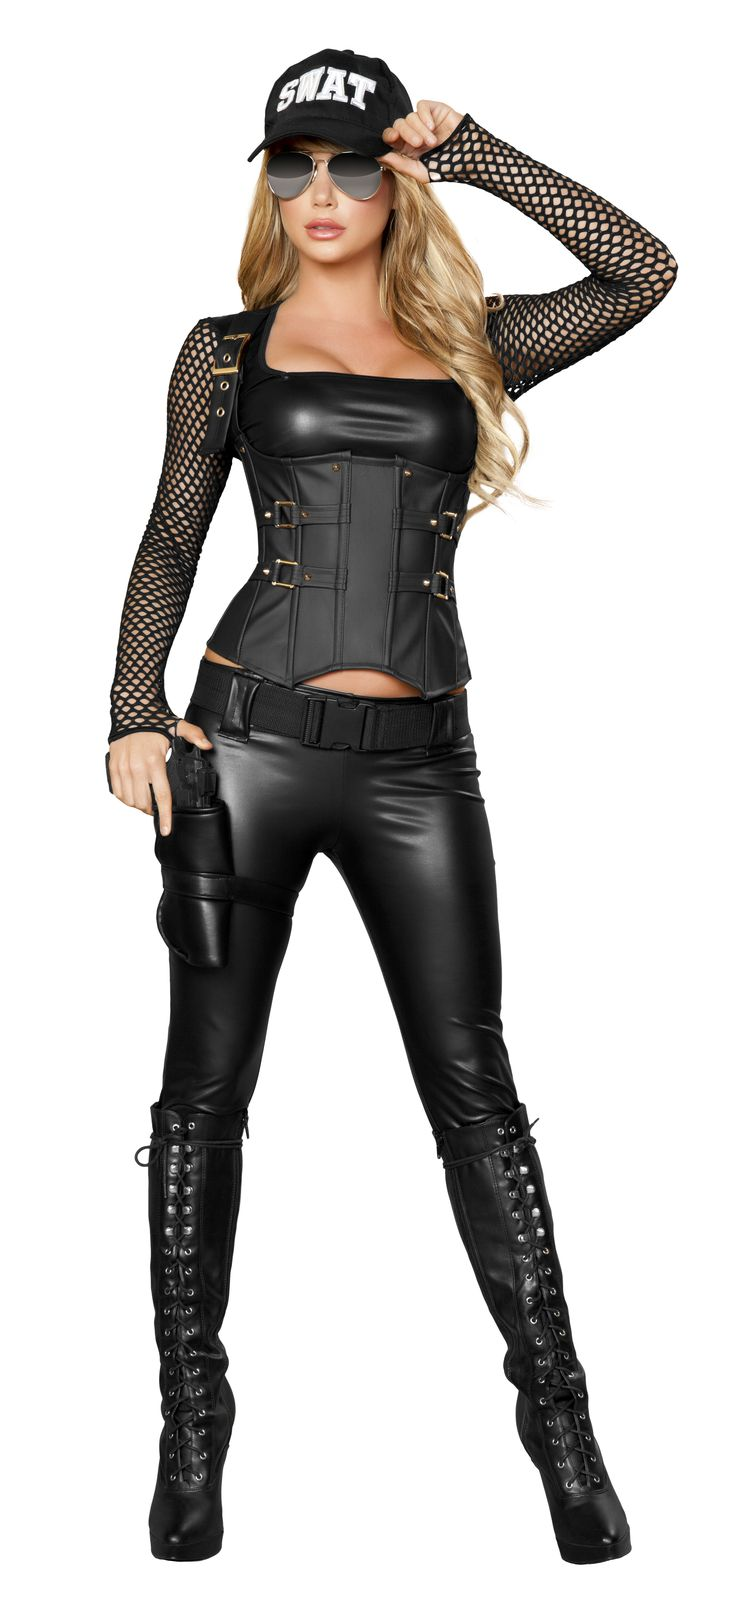 Brand NEW, the most POPULAR Halloween Costume of 2013 is HERE.  Buy now, while supplies last on this new Sexy Halloween Costume !  http://www.envycorner.com/sexy-swat-agent.html